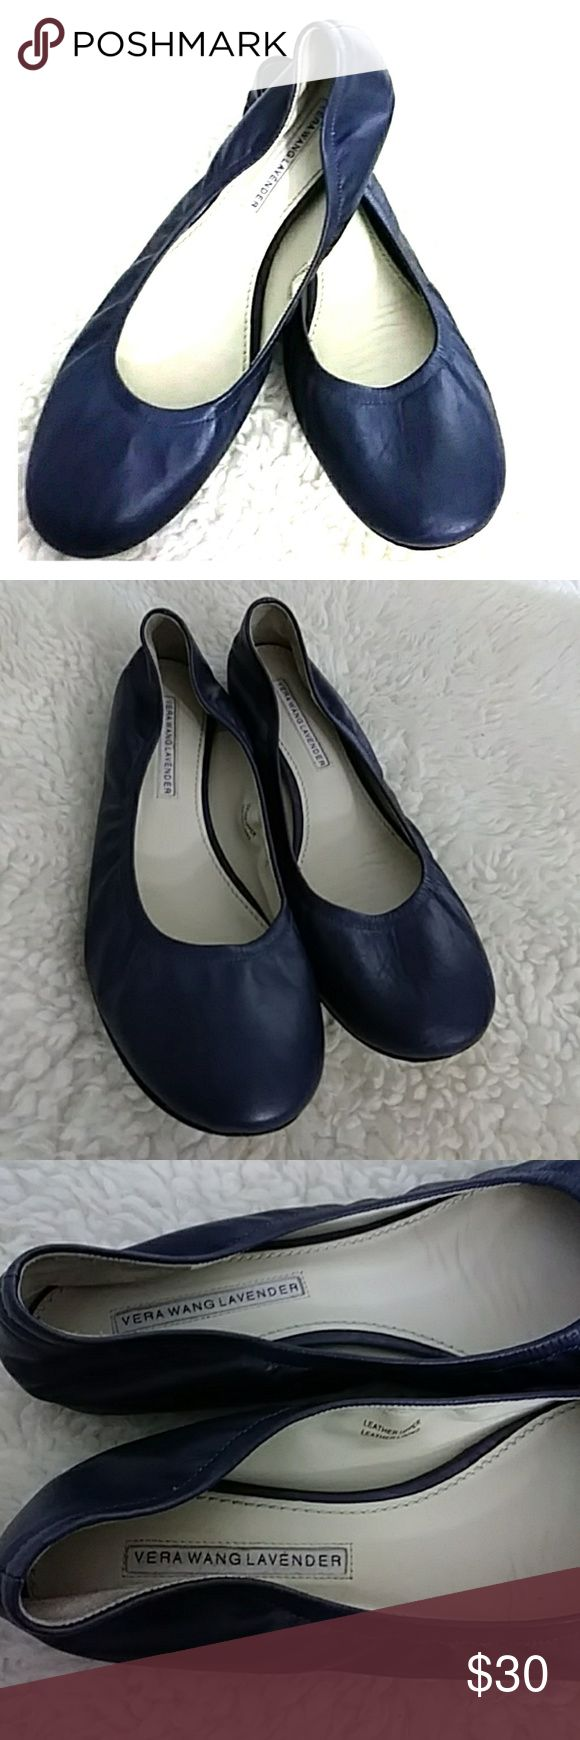 Vera Wang blue leather ballet flats Super soft leather ballet flats in good condition, soles show light wear not bad at all Vera Wang Lavender Shoes Flats & Loafers